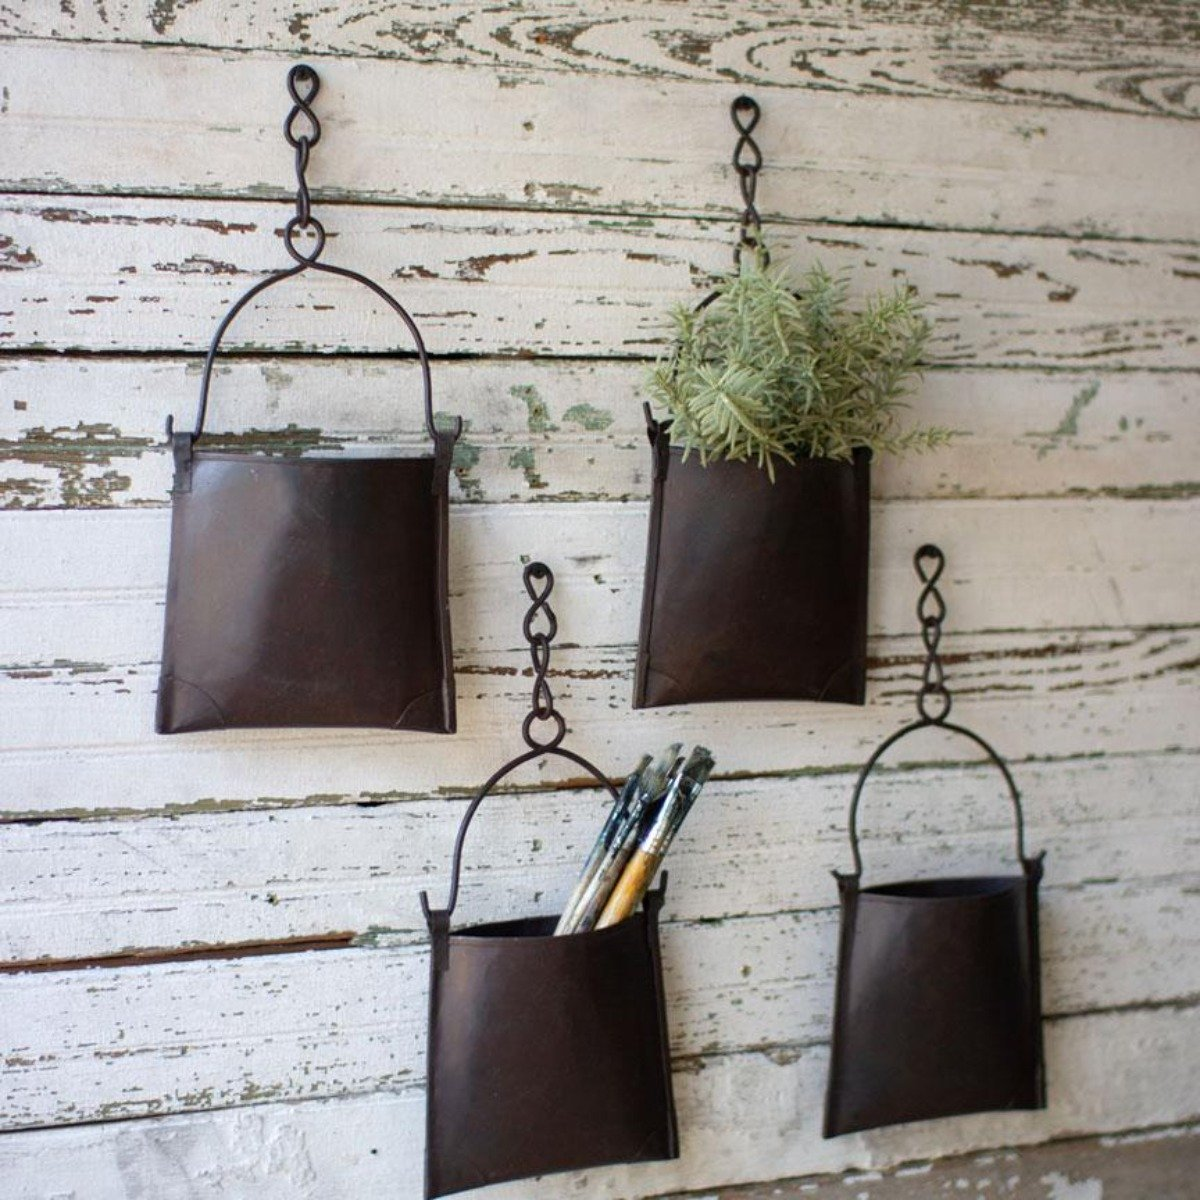 Hanging Iron Pockets Set 4 Accents